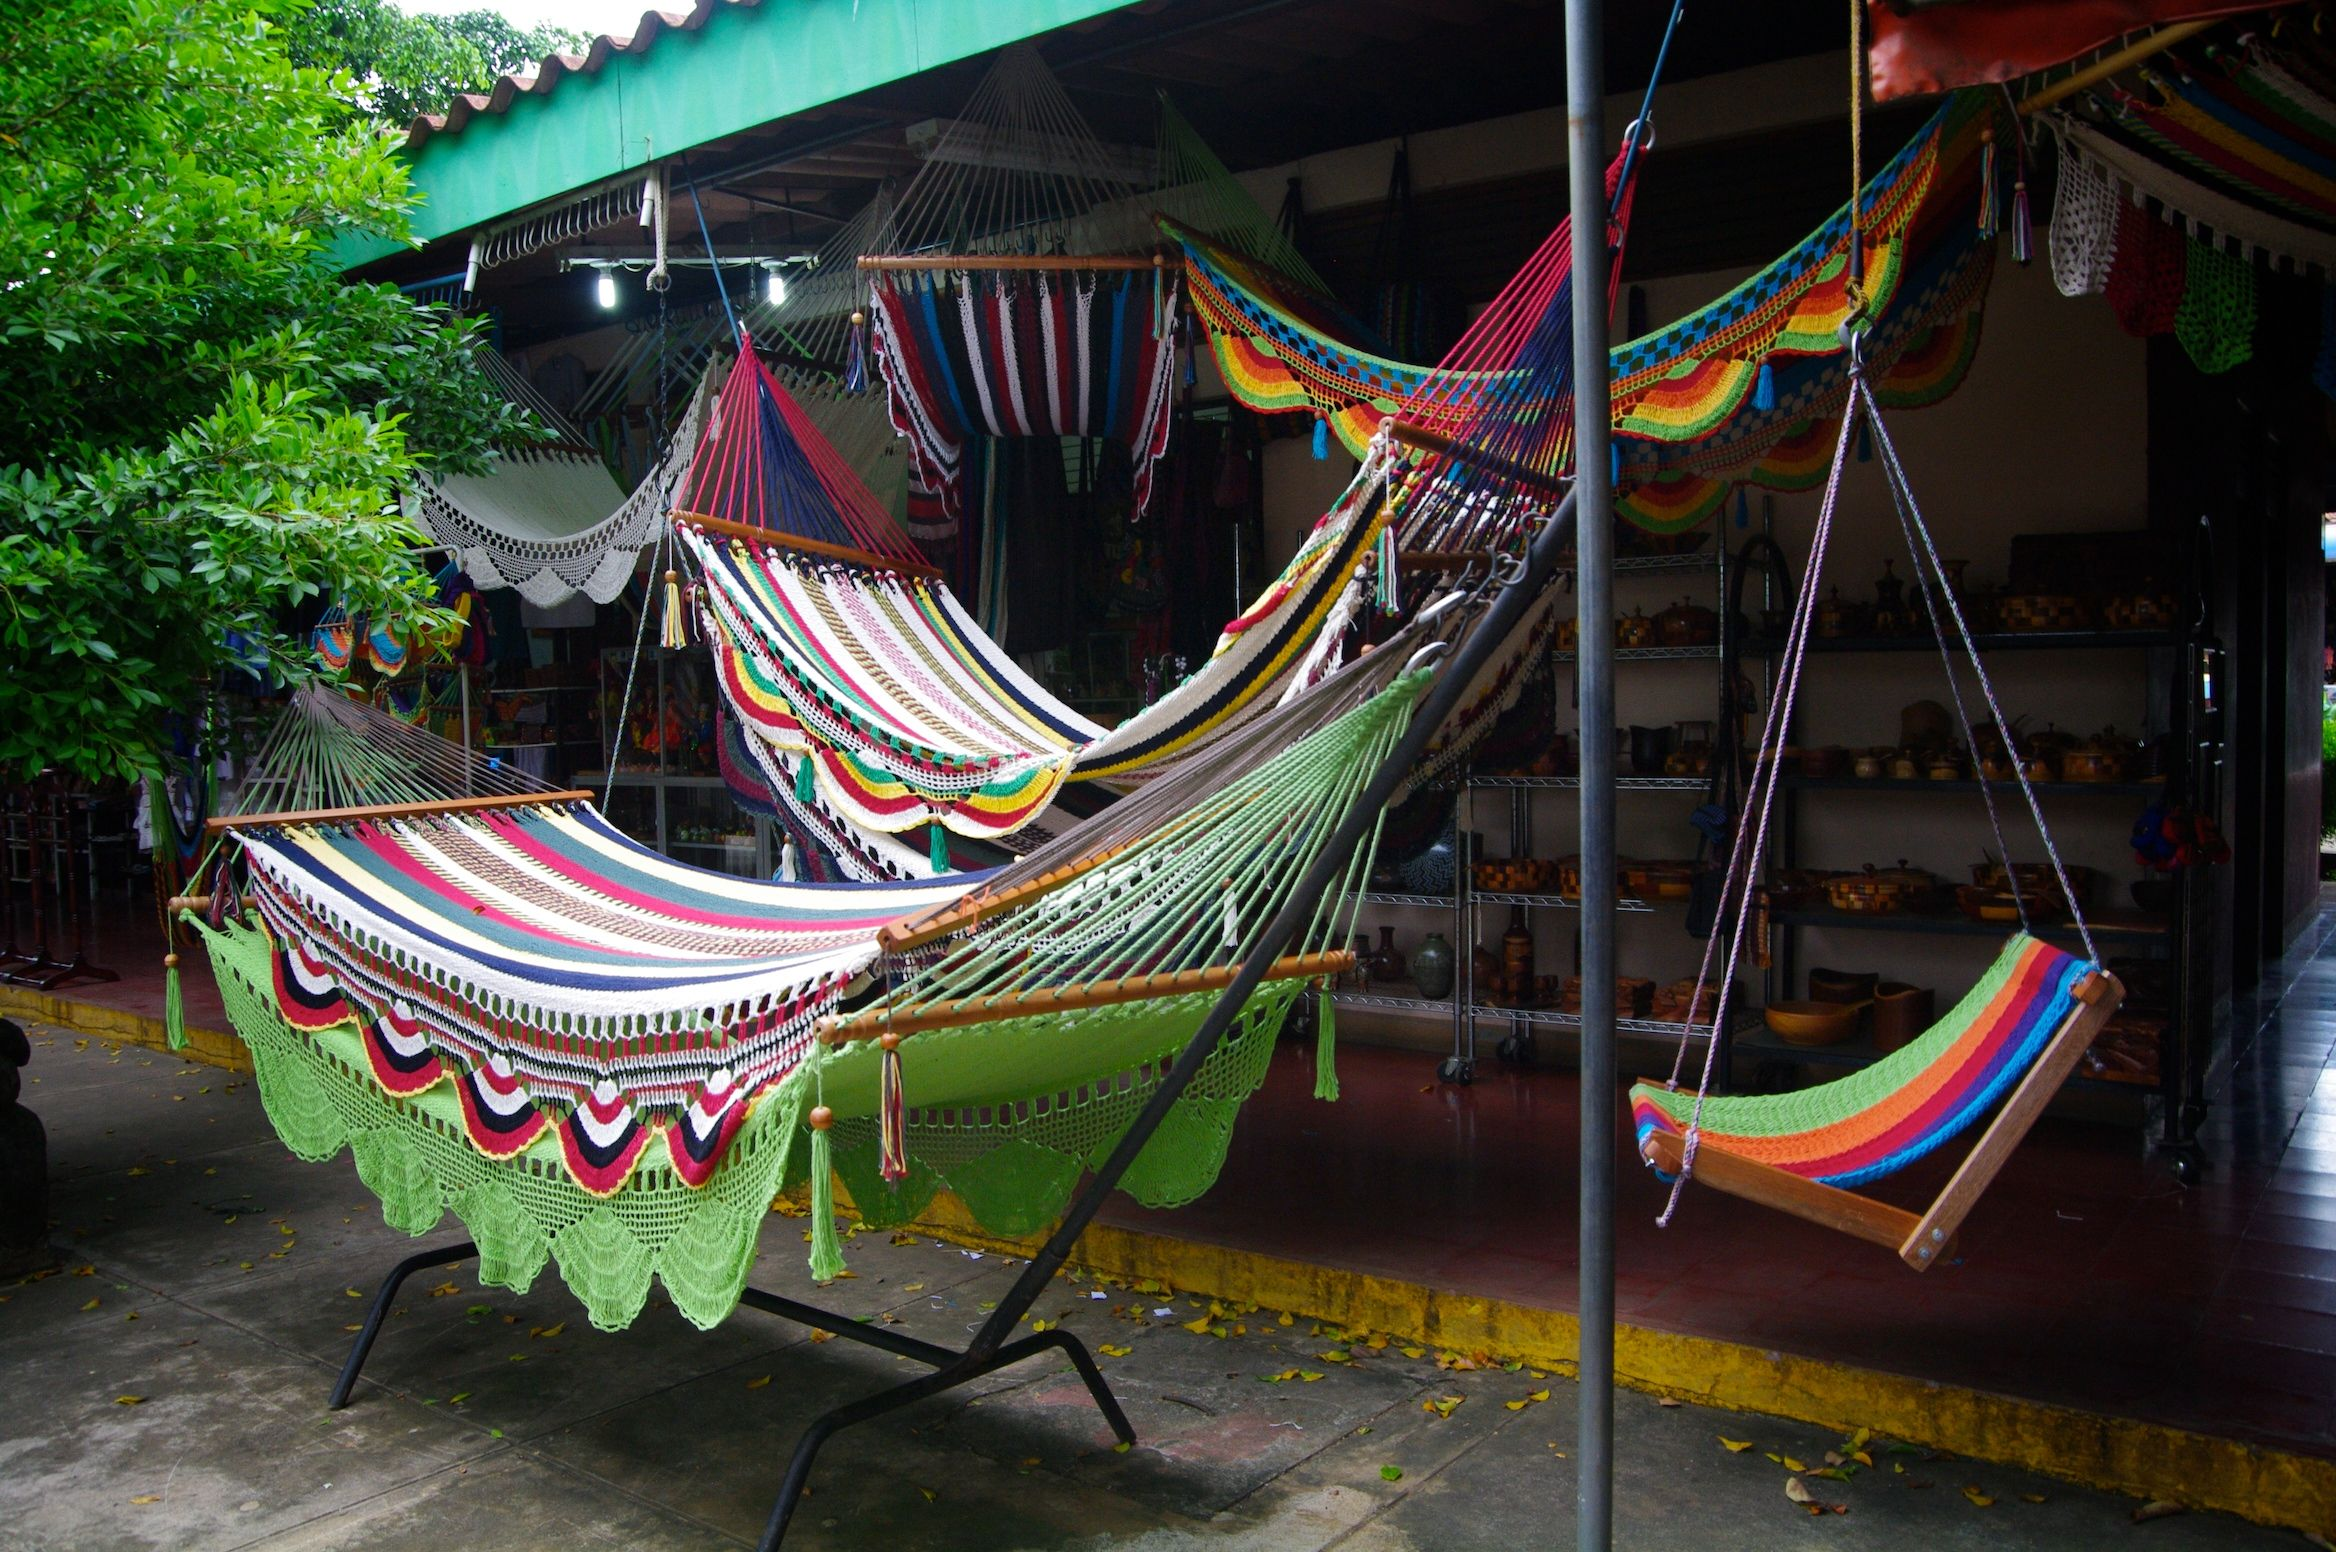 Medium image of costa rica    handmade hammocks  national artisan market  u2013 masaya nicaragua   in nica now